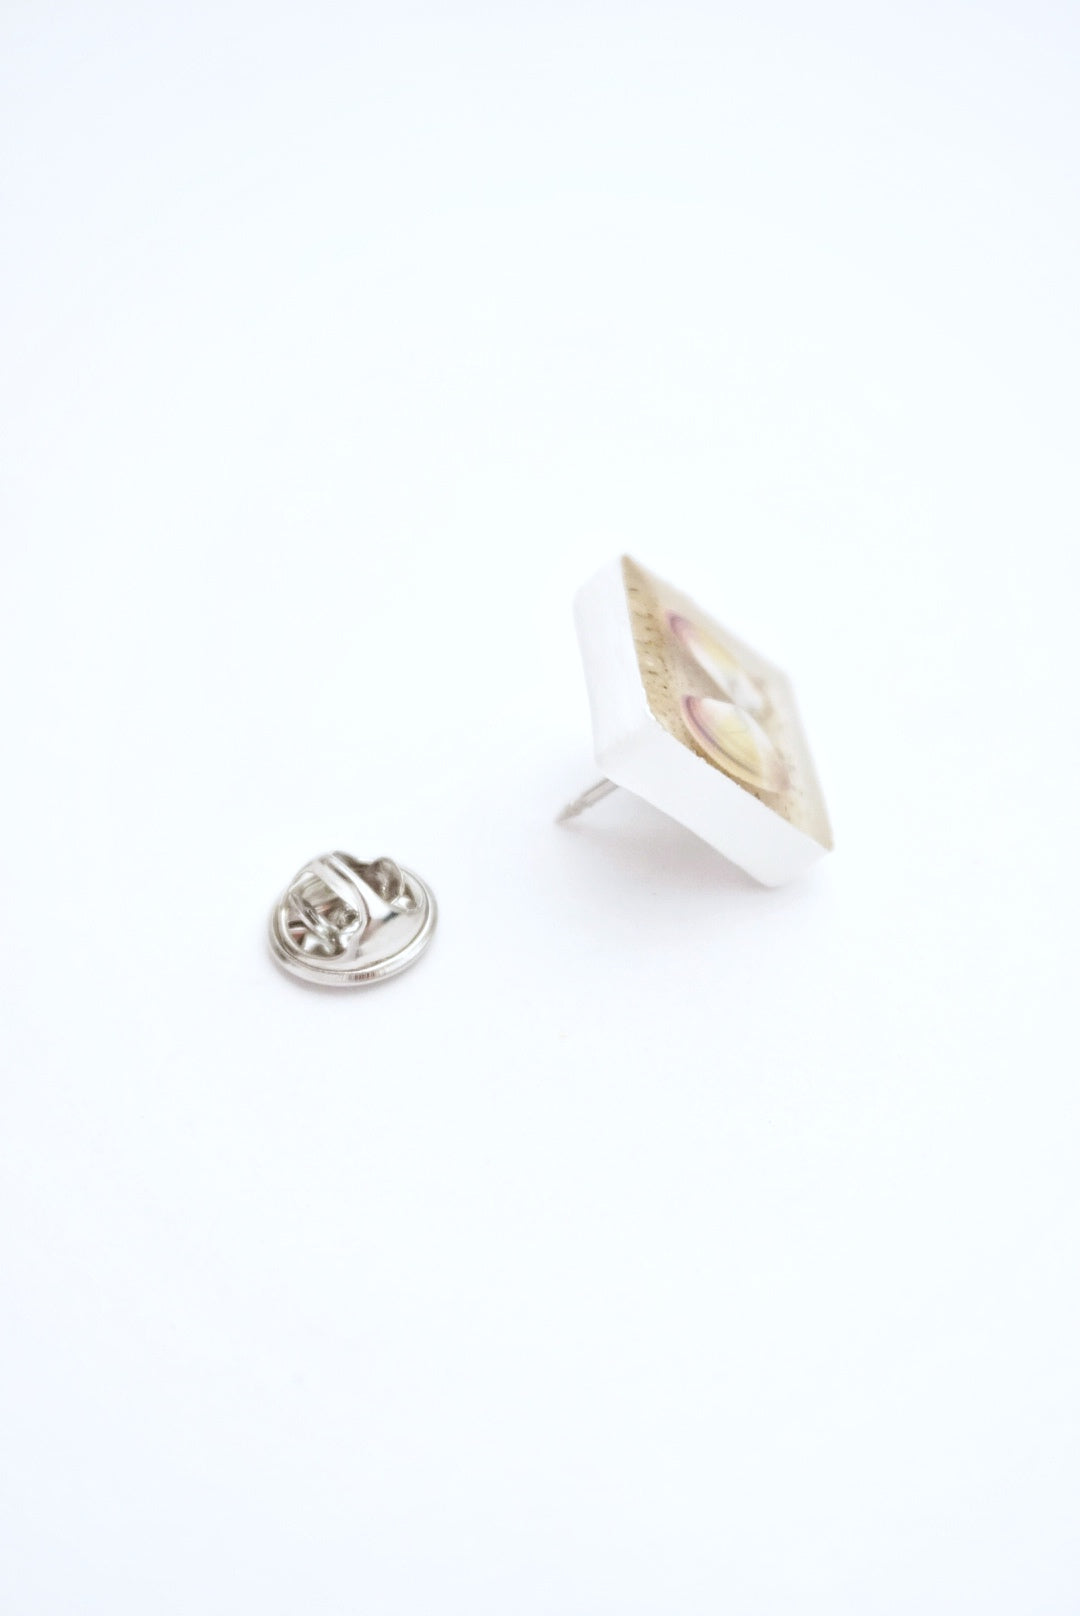 Coquina Shell Lapel Pin